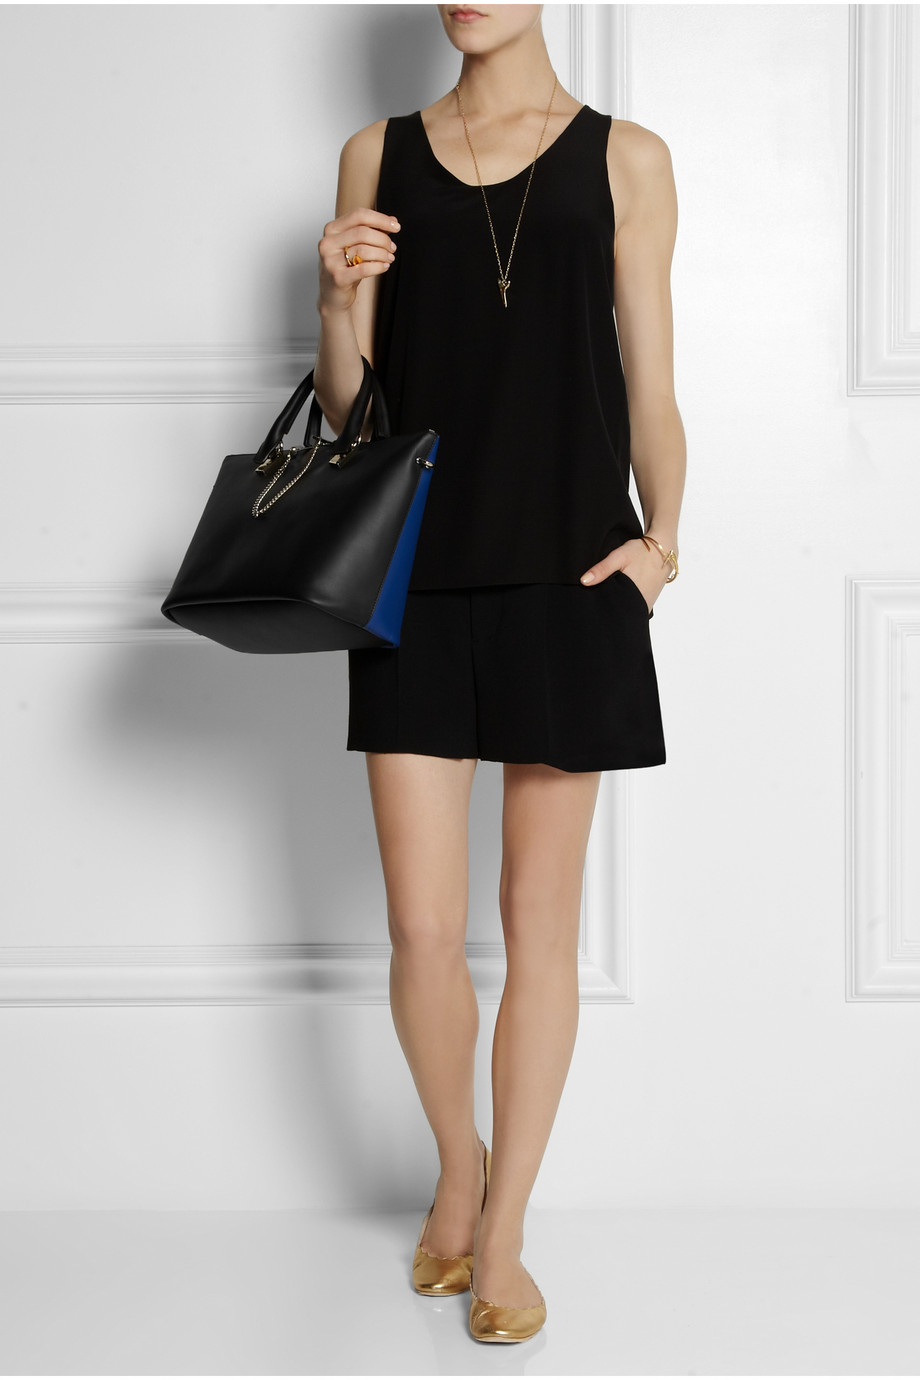 Chlo¨¦ Baylee Medium Twotone Leather Tote in Blue (Black) | Lyst